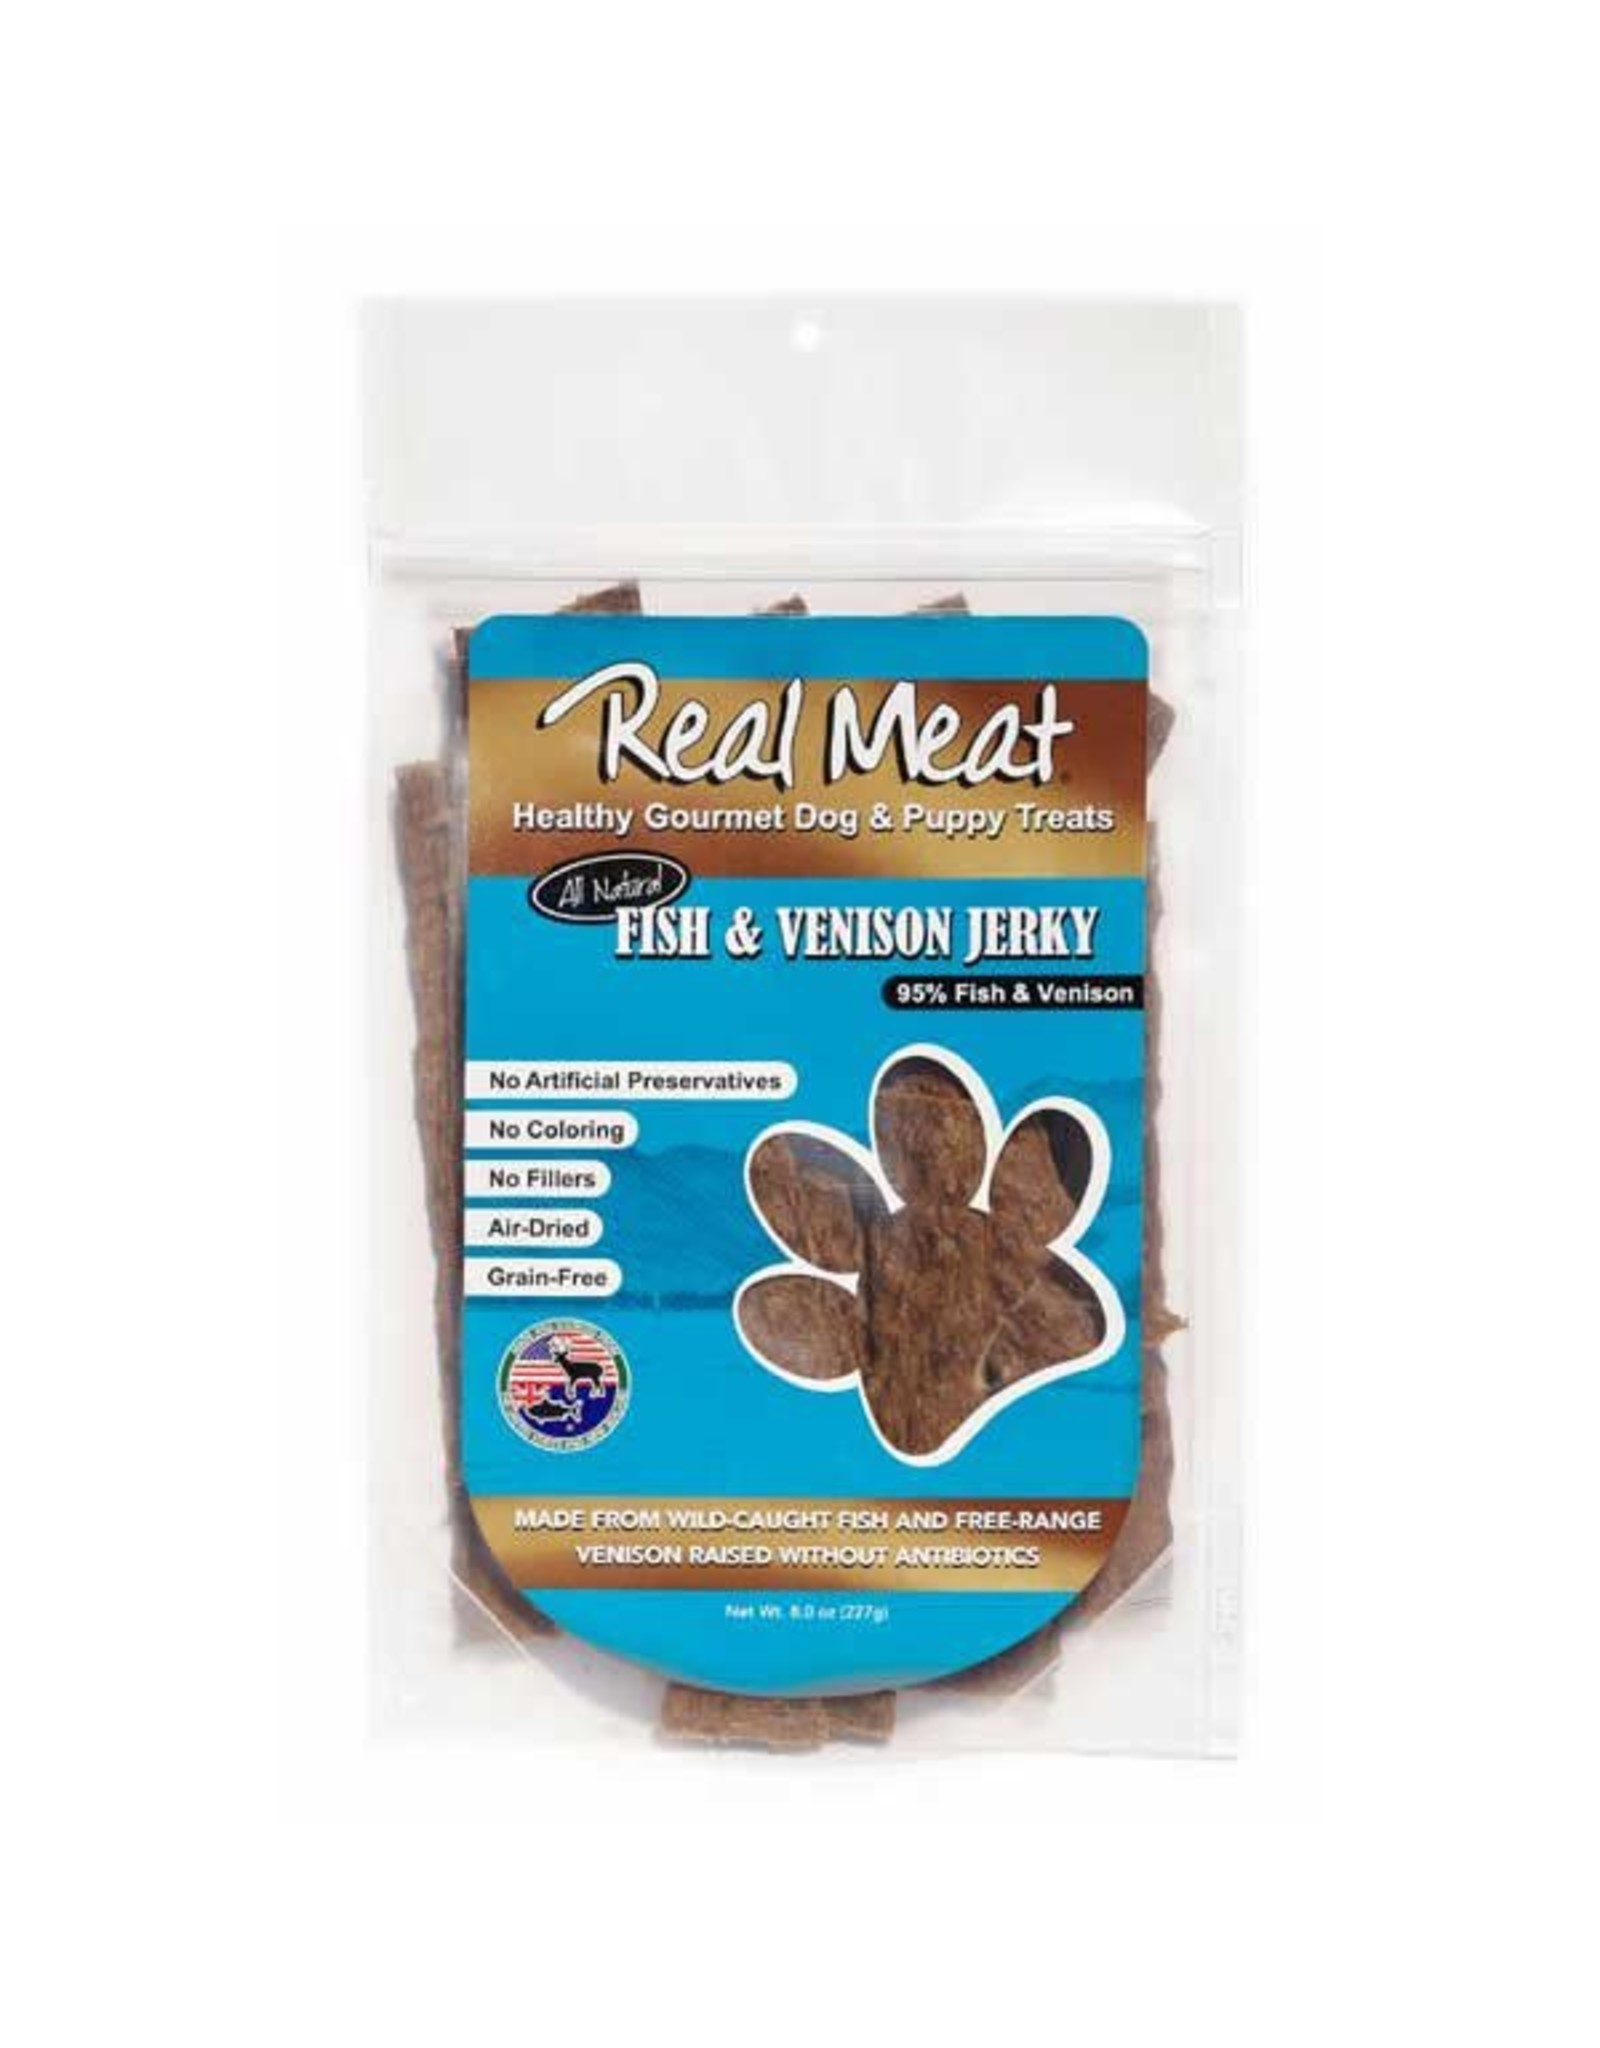 The Real Meat Company THE REAL MEAT CO. FISH & VENISON JERKY TREATS 8OZ